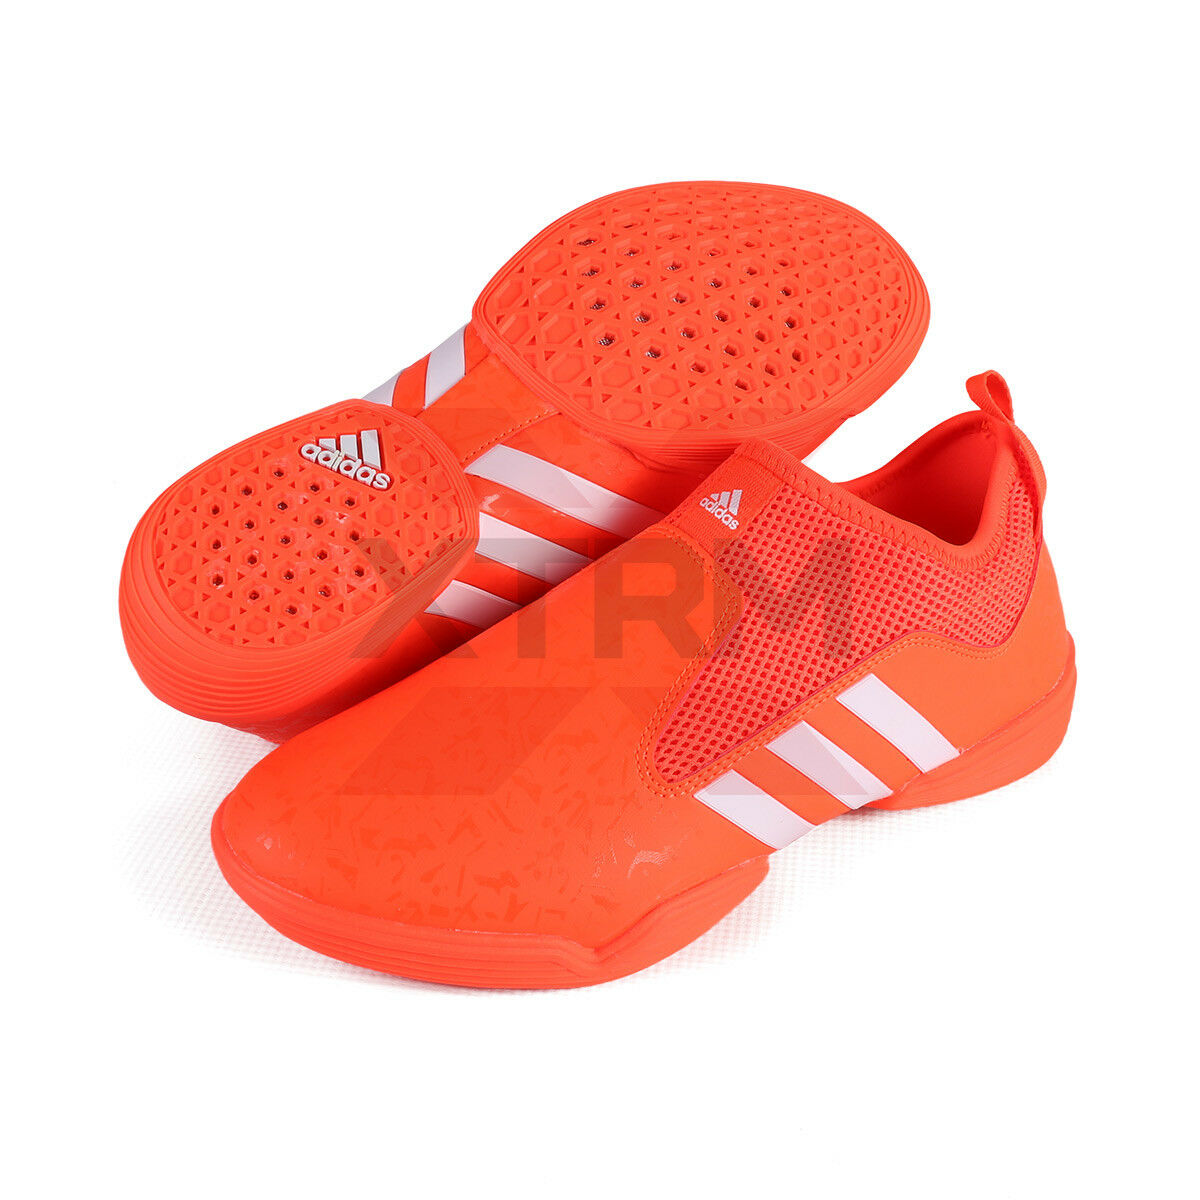 Adidas  Martial Arts Taekwondo Karate MMA TKD Rio ADI CONTESTANT Red shoes  the best after-sale service